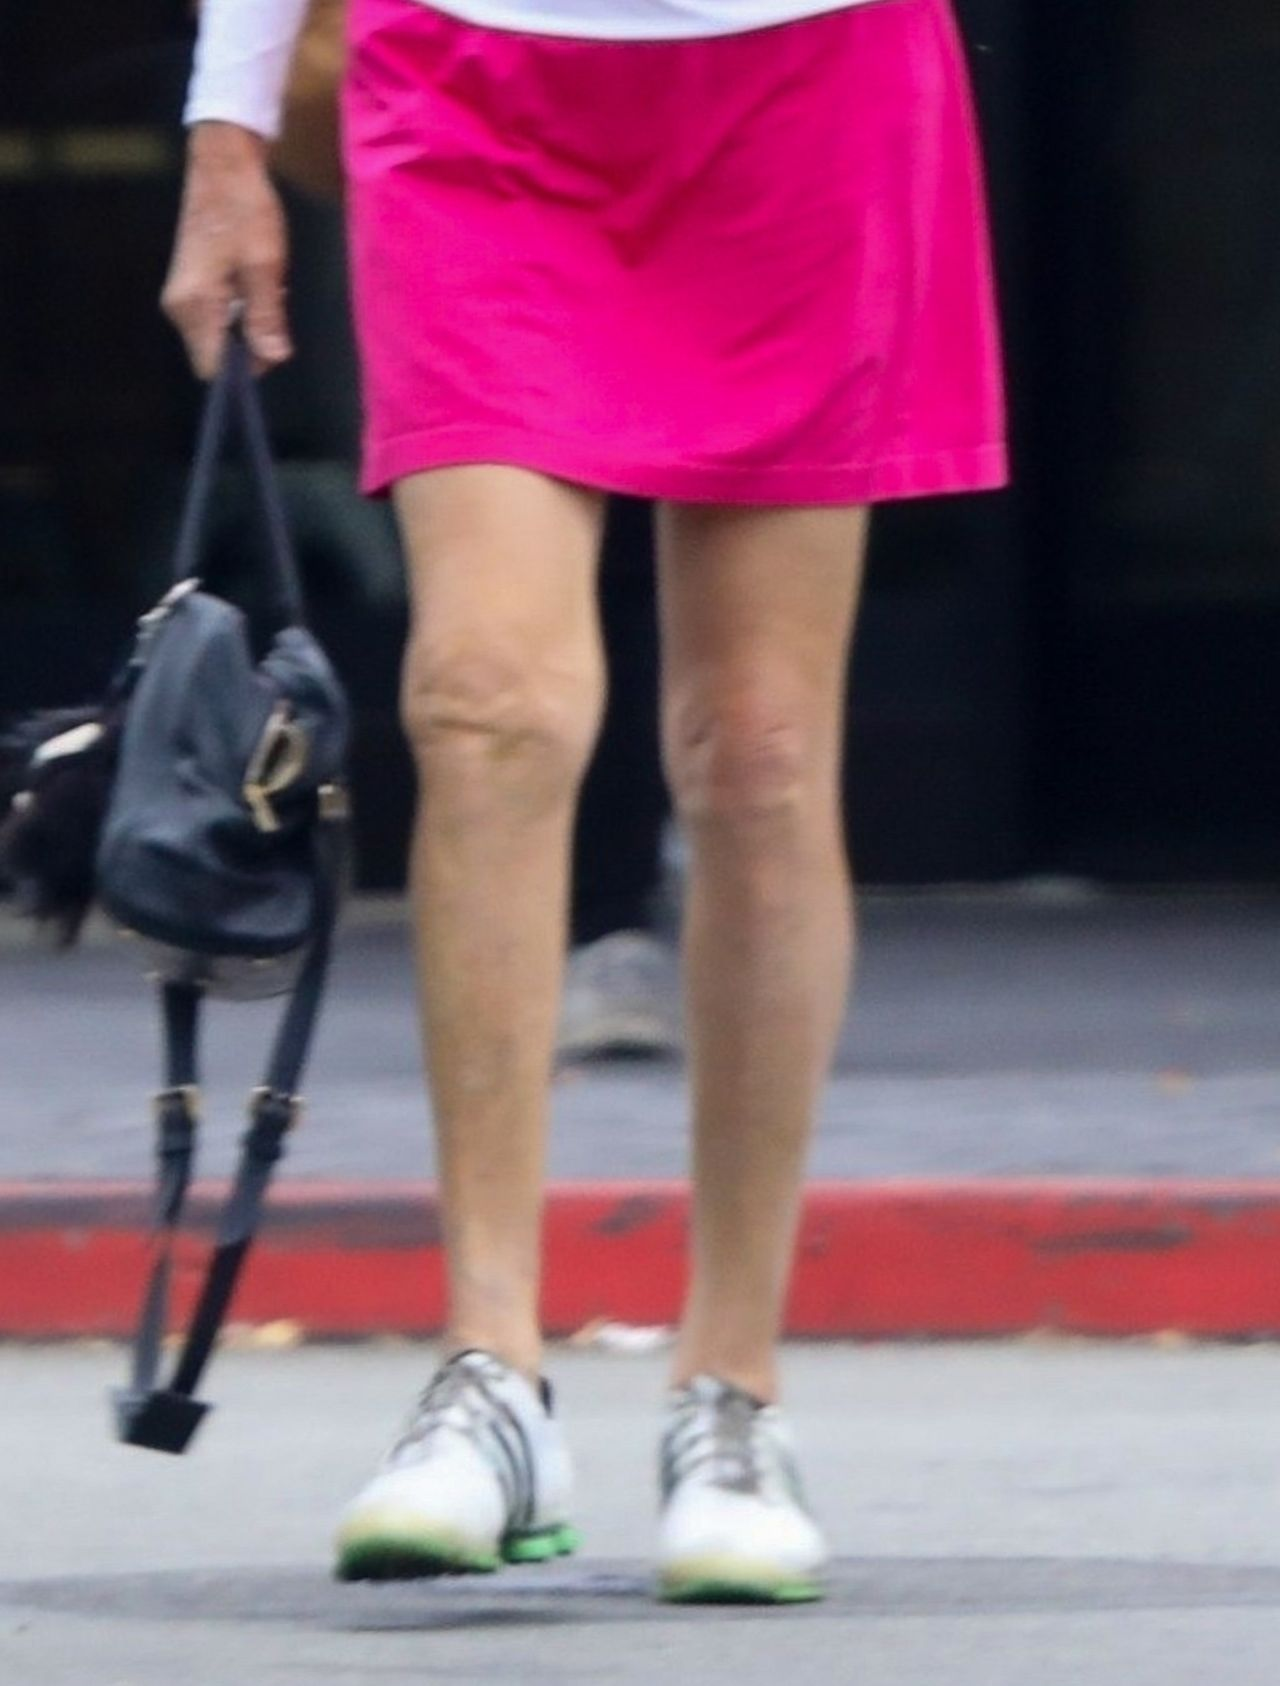 *EXCLUSIVE* Caitlyn Jenner stops by Starbucks after playing golf